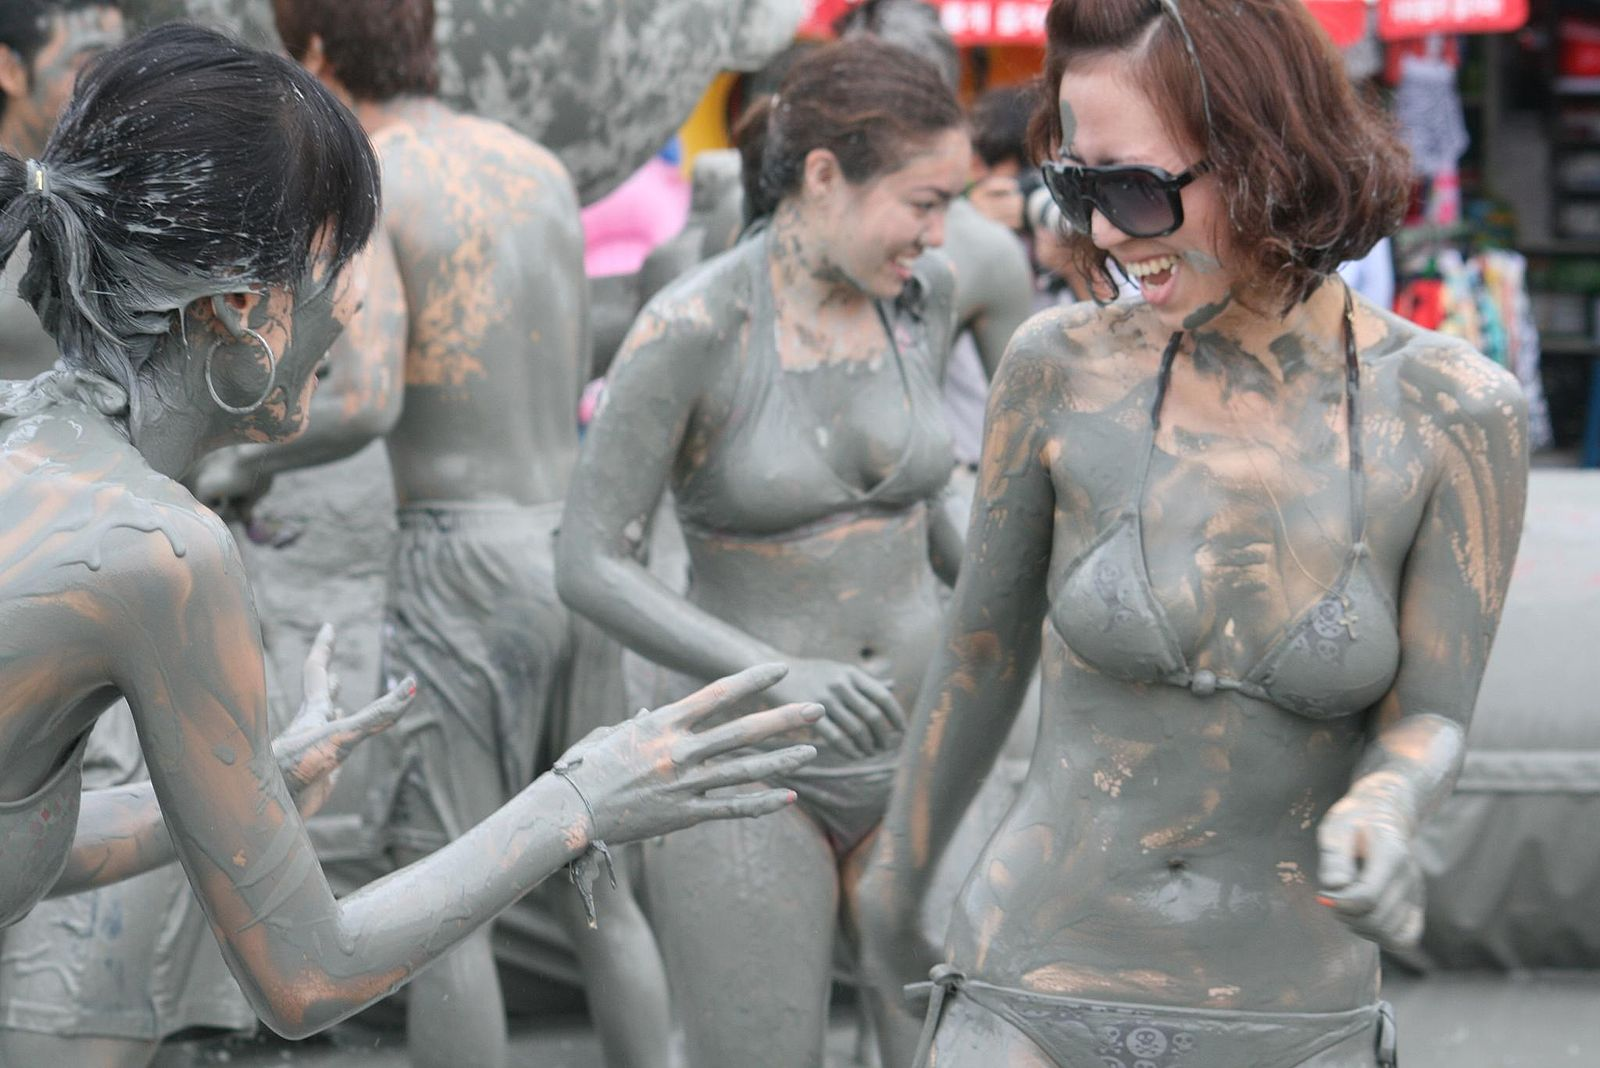 Boryeong Mud Festival - 7 Festivals From Around The World To Add To Your Bucket List